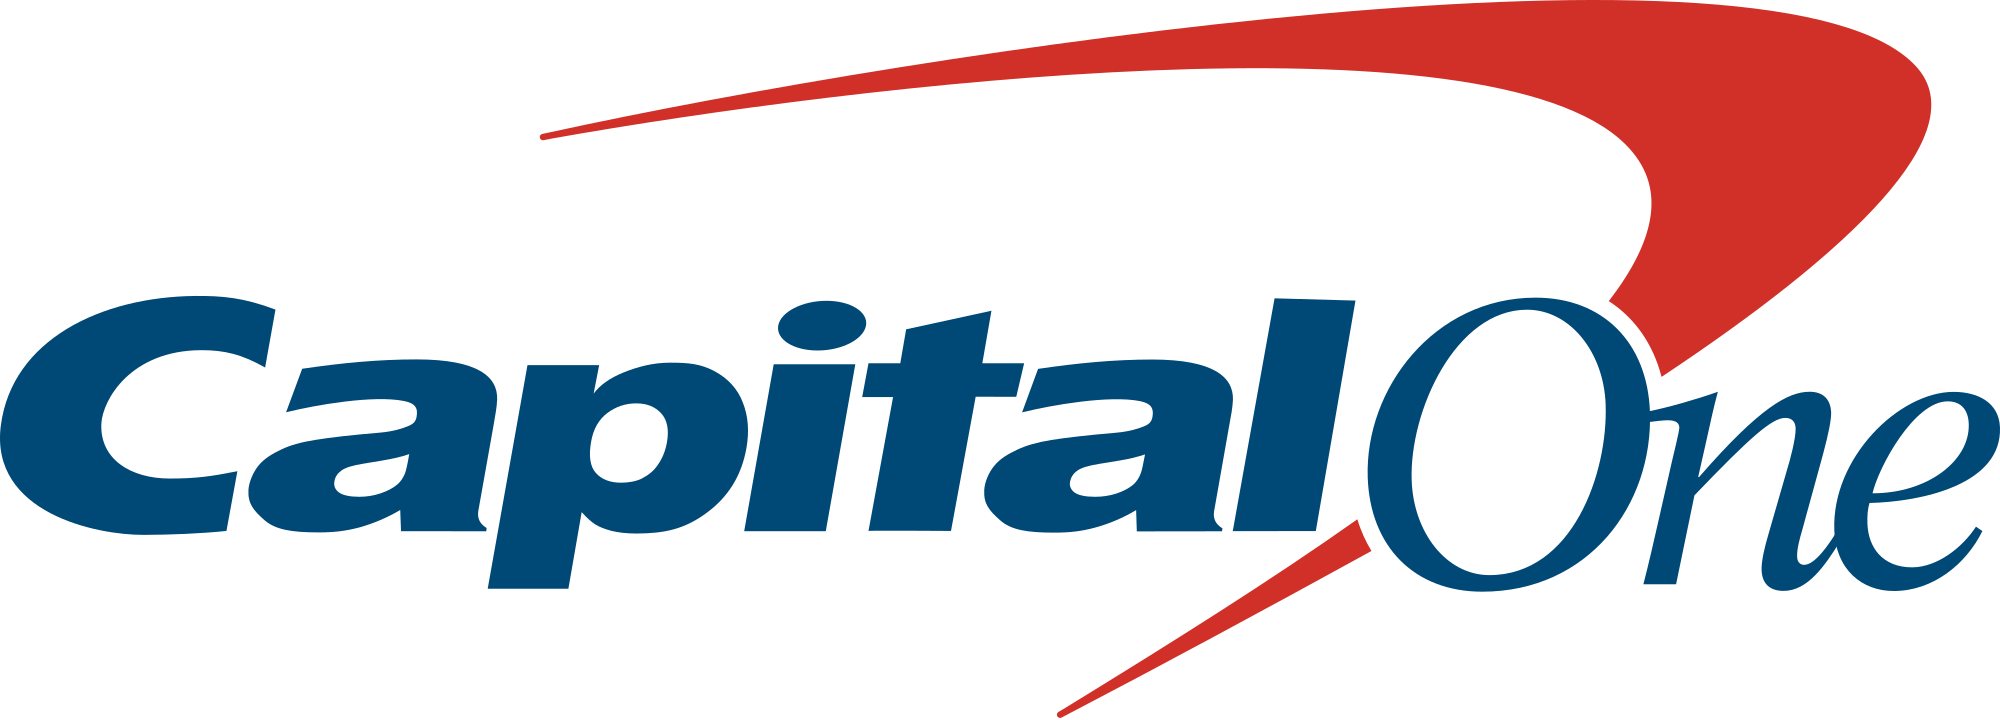 Senior Software Engineer role from Capital One in New York, NY